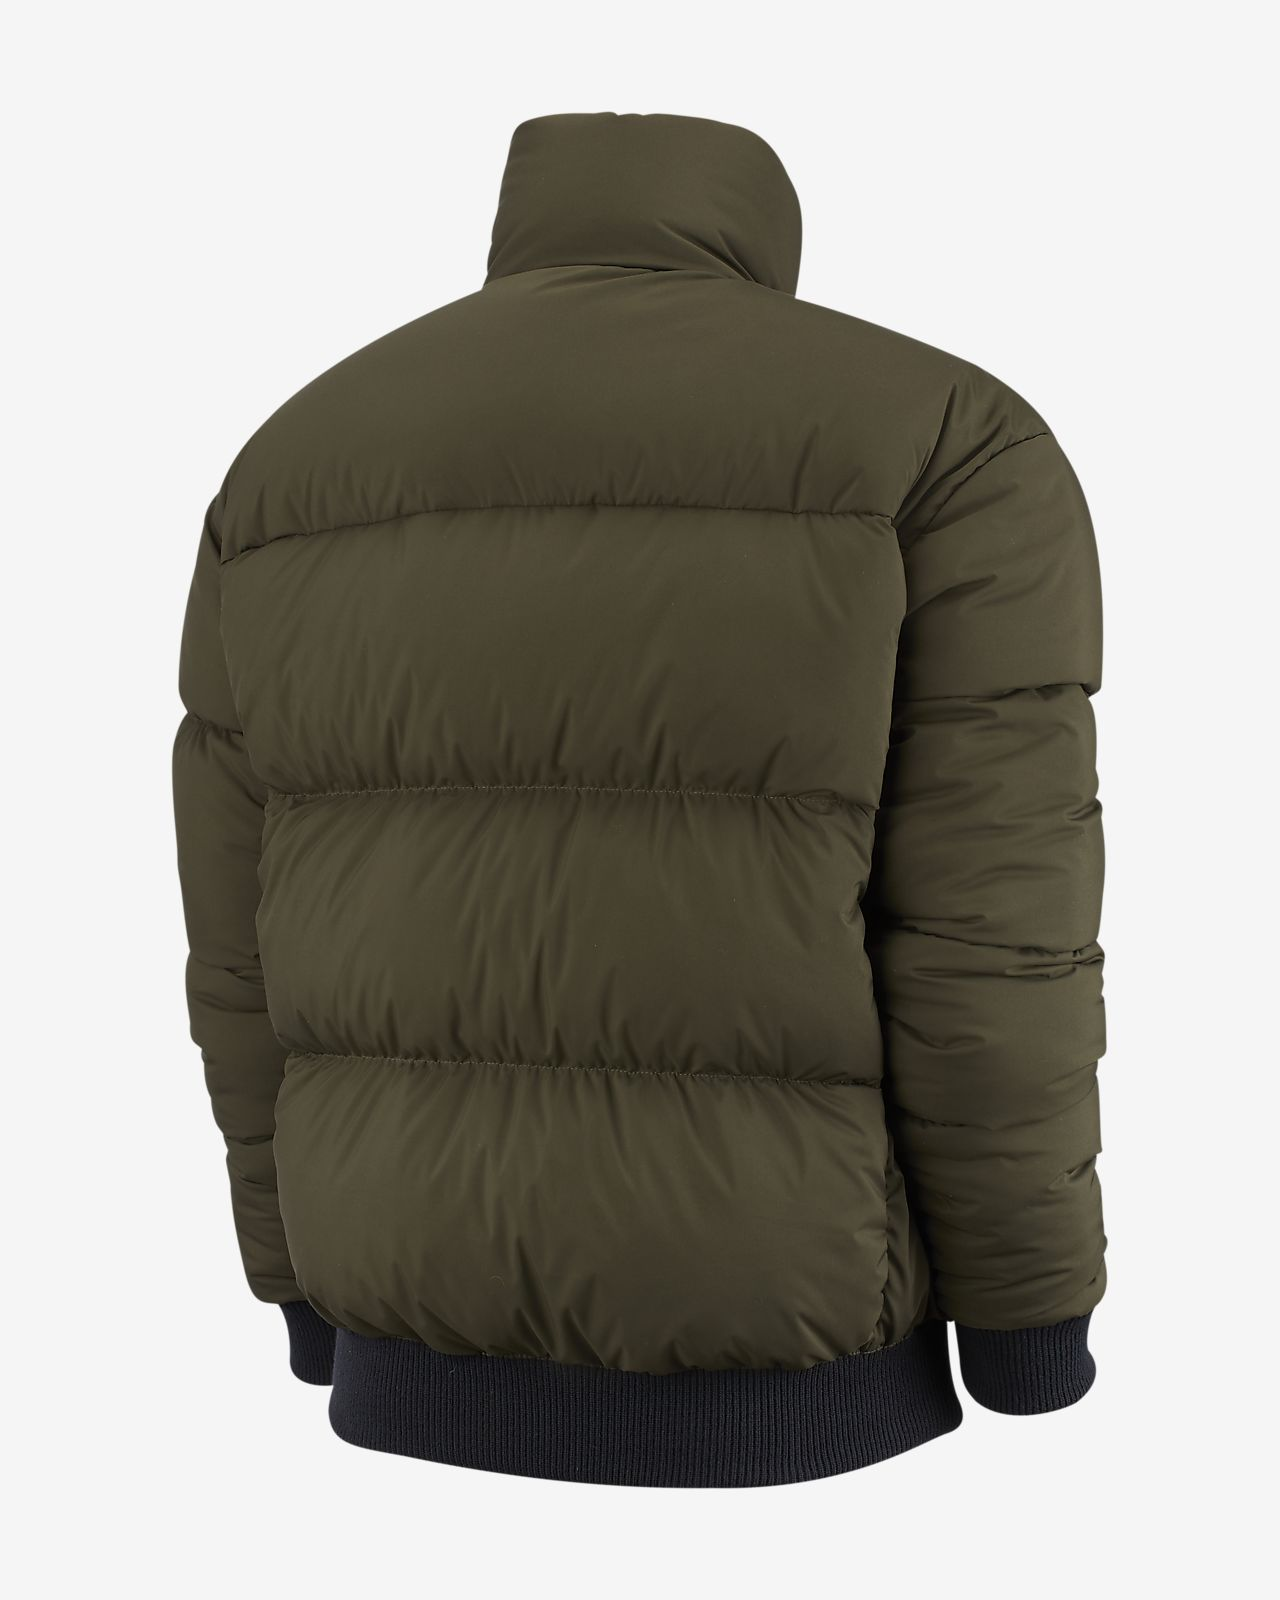 07c721a53c9d Low Resolution NikeLab Collection Women s Puffer Jacket NikeLab Collection  Women s Puffer Jacket